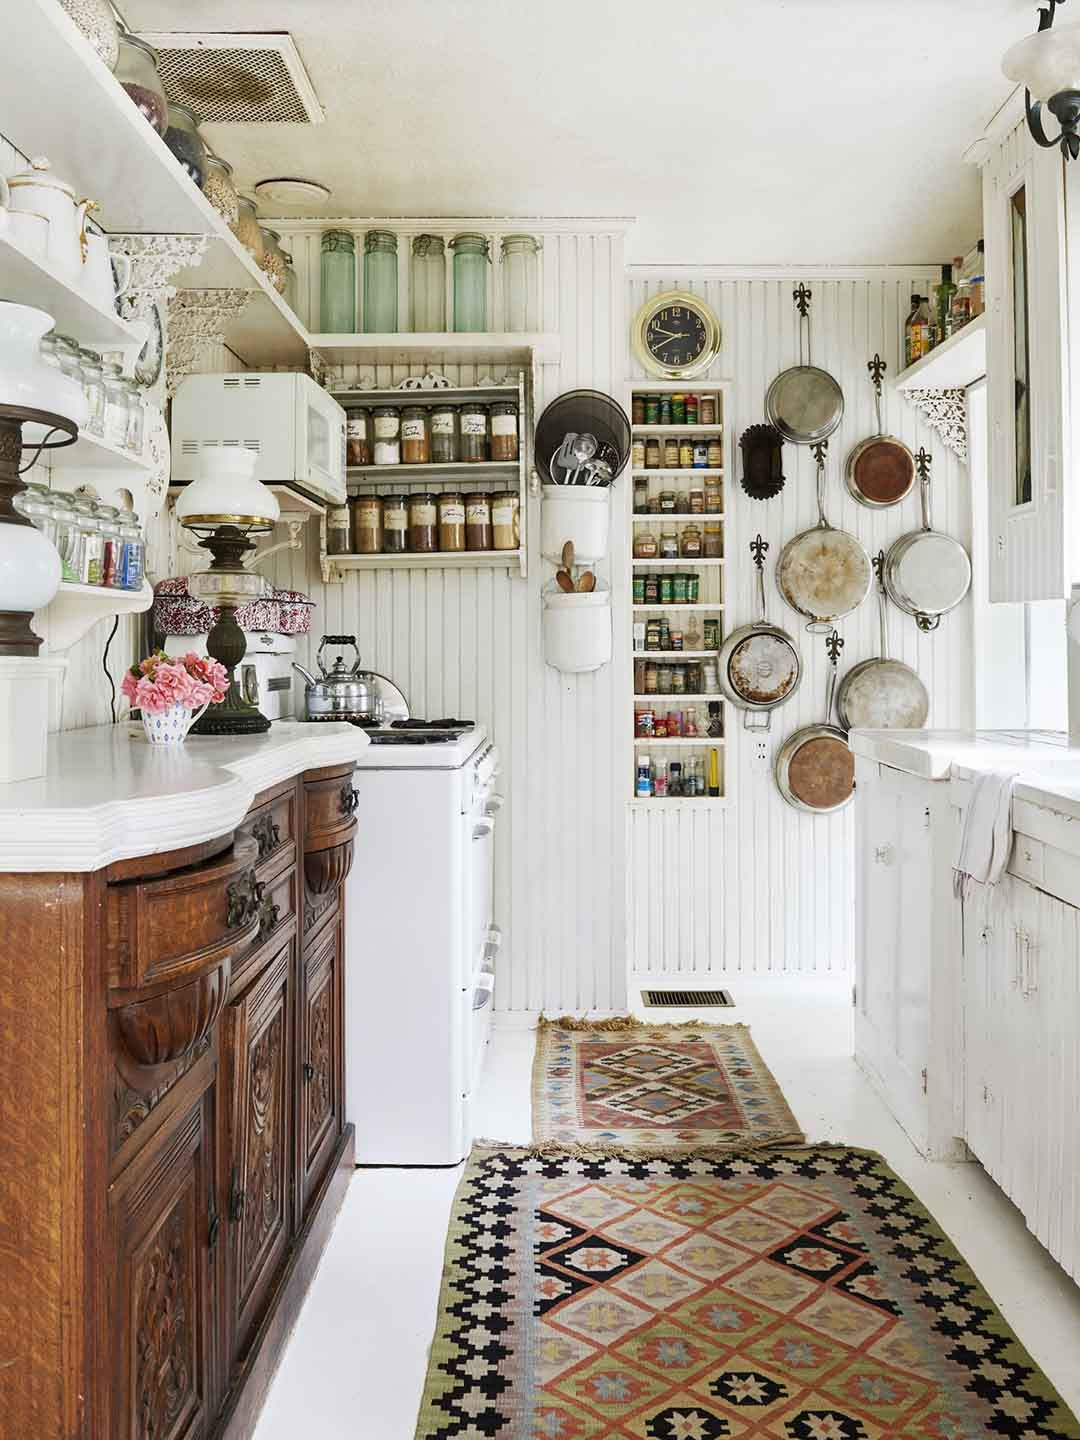 Small Kitchen Decor Temporary Home Interior Design House Cottage Homes Eclectic Vintage Open Shelving Organization